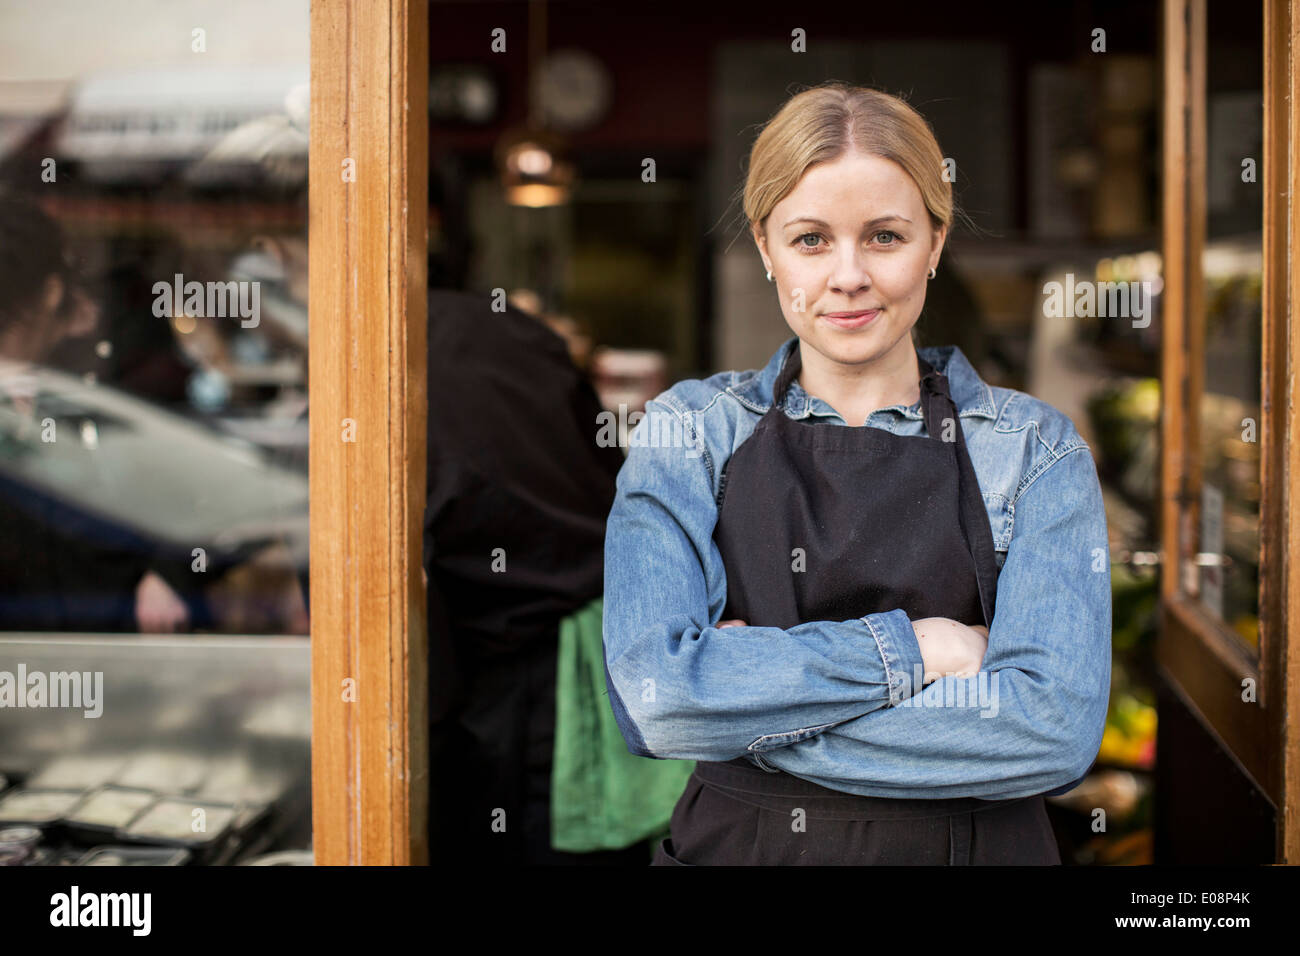 Portrait of confident saleswoman standing arms crossed at supermarket entrance - Stock Image